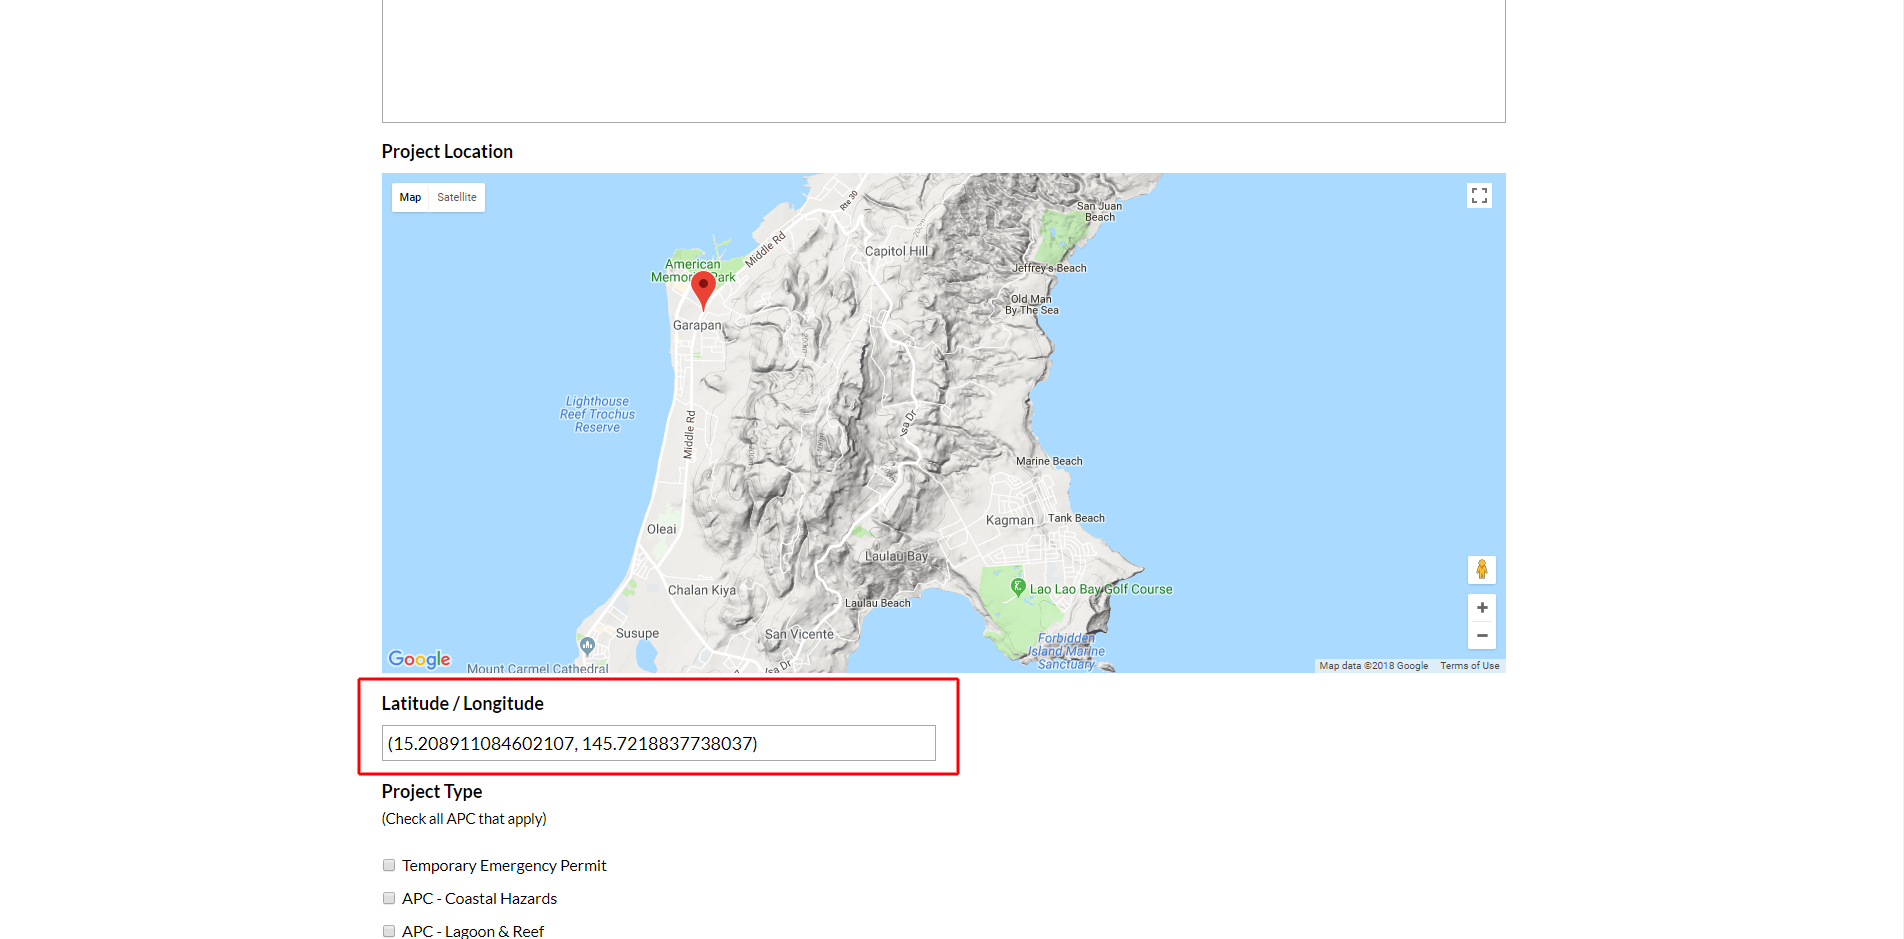 Northern Mariana Island's Division of Coastal Resources website location map